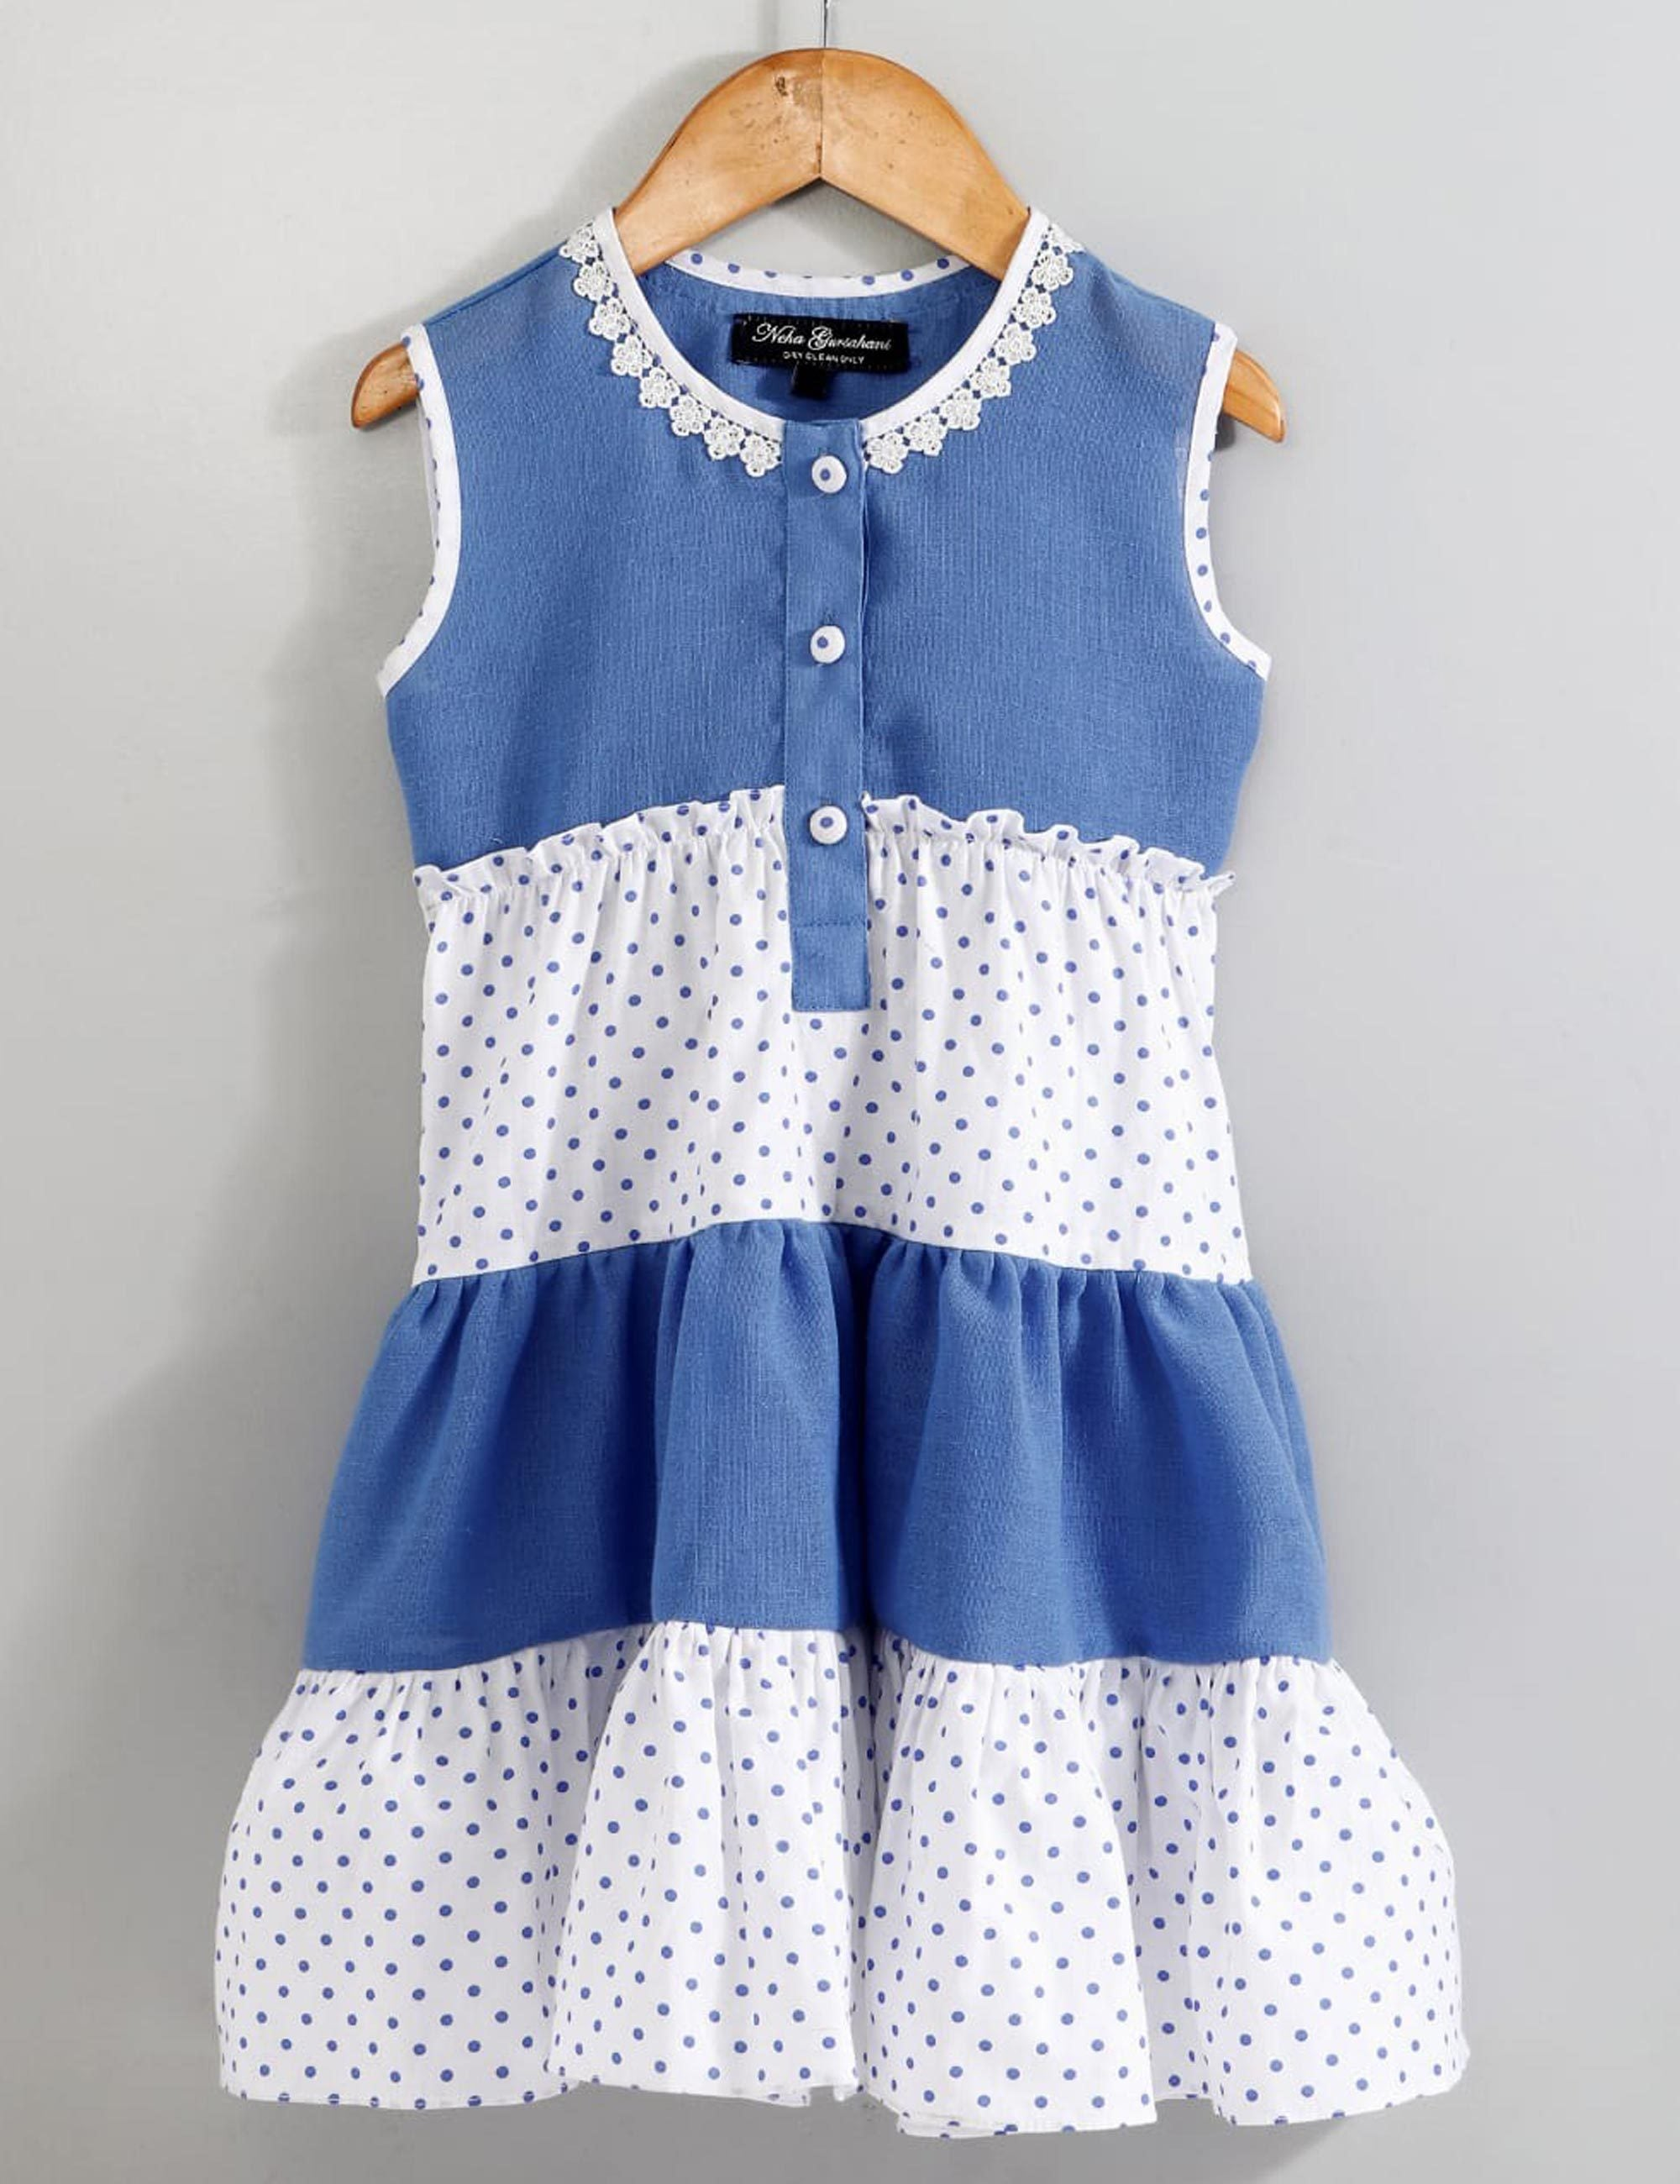 Blue Polka dot tired dress